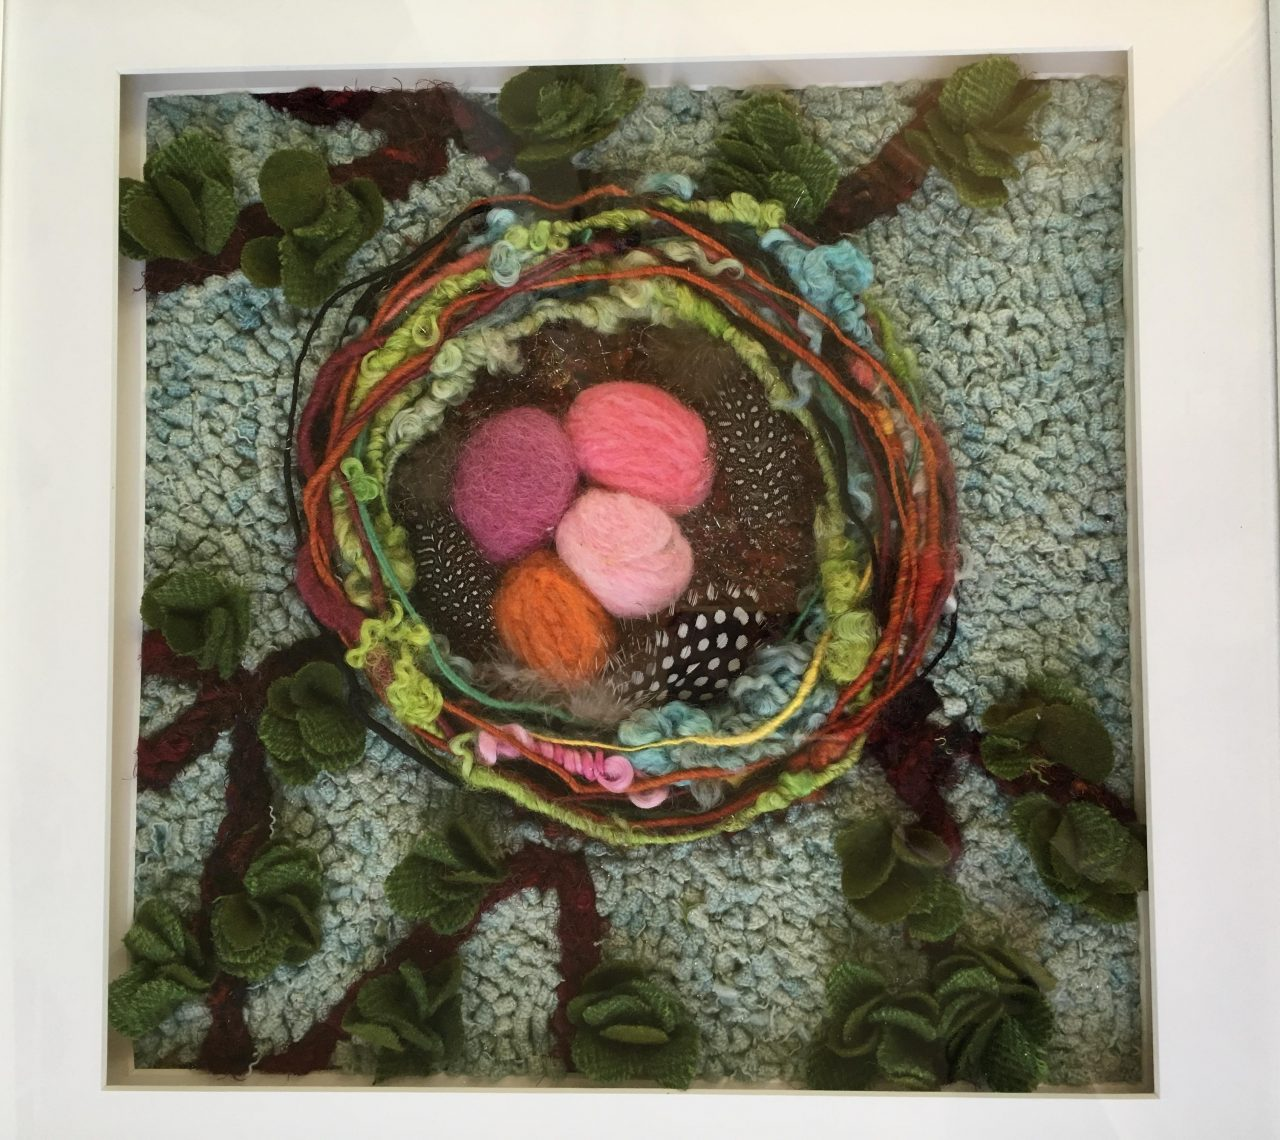 A hooked piece of textile art featuring a colourful birds nest on a green background by Yvonne Iten-Scott.